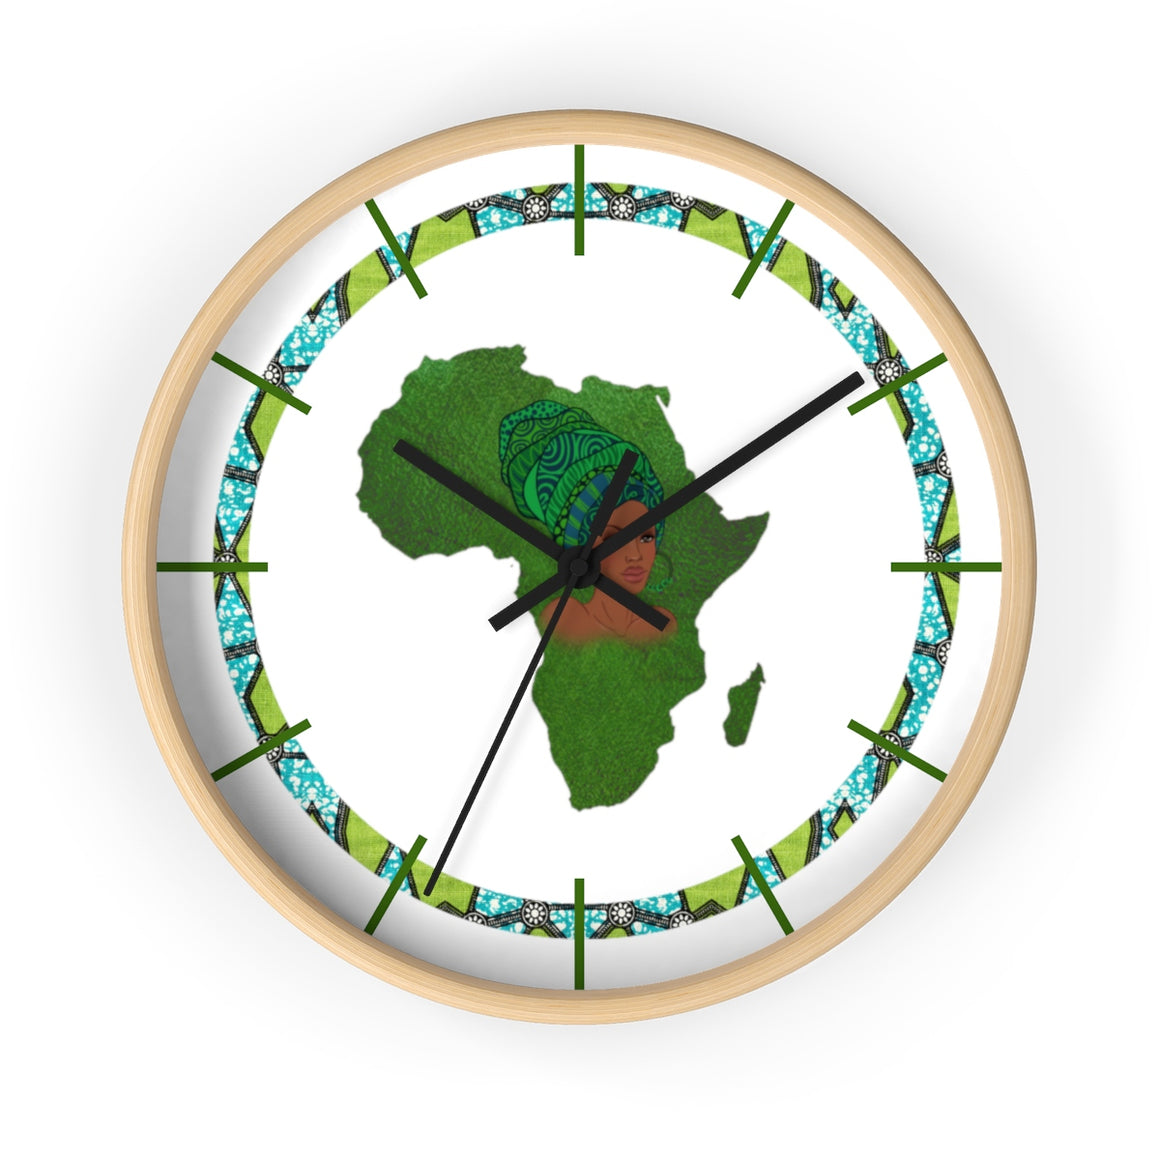 Green Map Of Africa Wall clock - Zabba Designs African Clothing Store